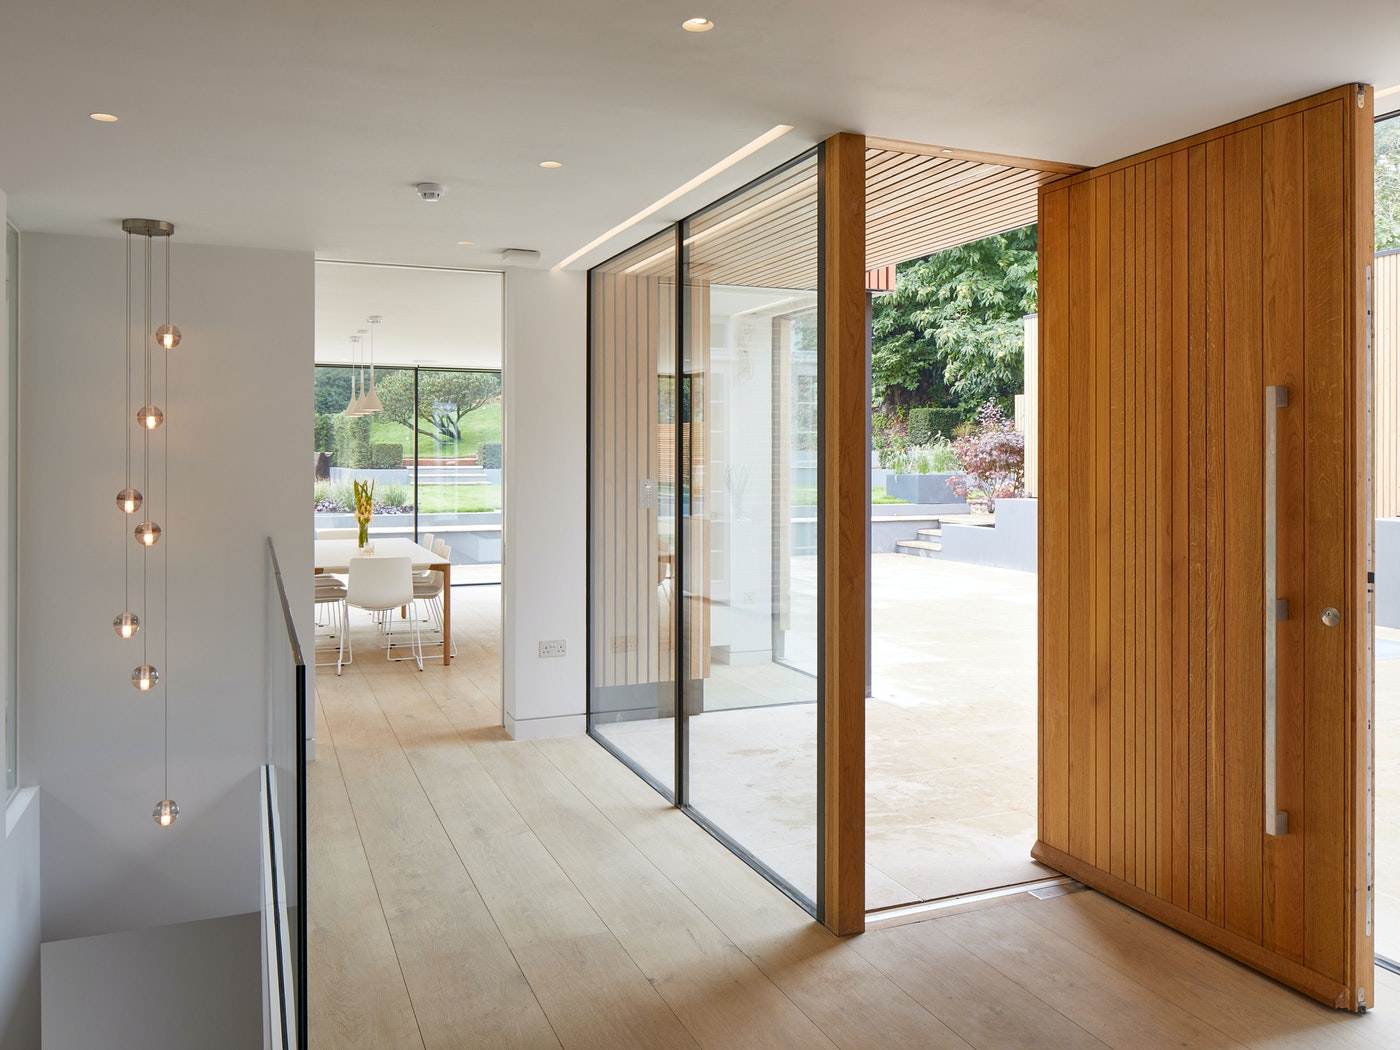 Fitted in glass, this door makes an impressive entrance